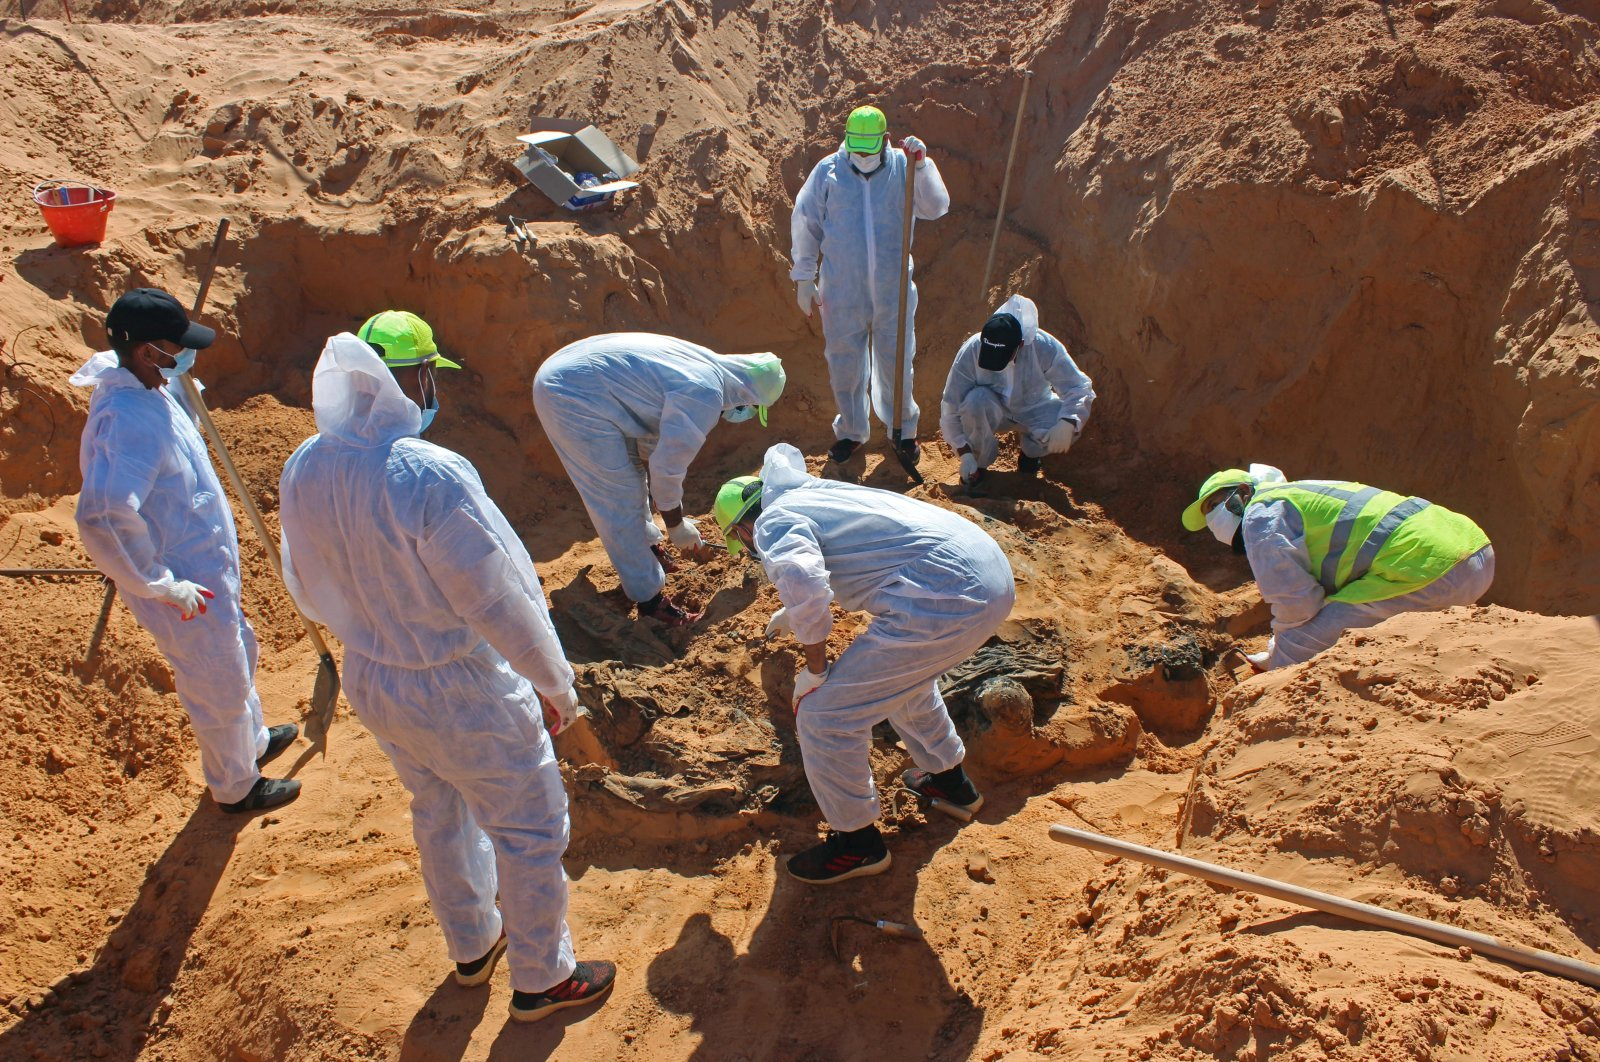 Members of the Government of National Accord's (GNA) missing person bureau exhume bodies from a mass grave in Tarhuna, Libya, Oct. 27, 2020. (Reuters Photo)